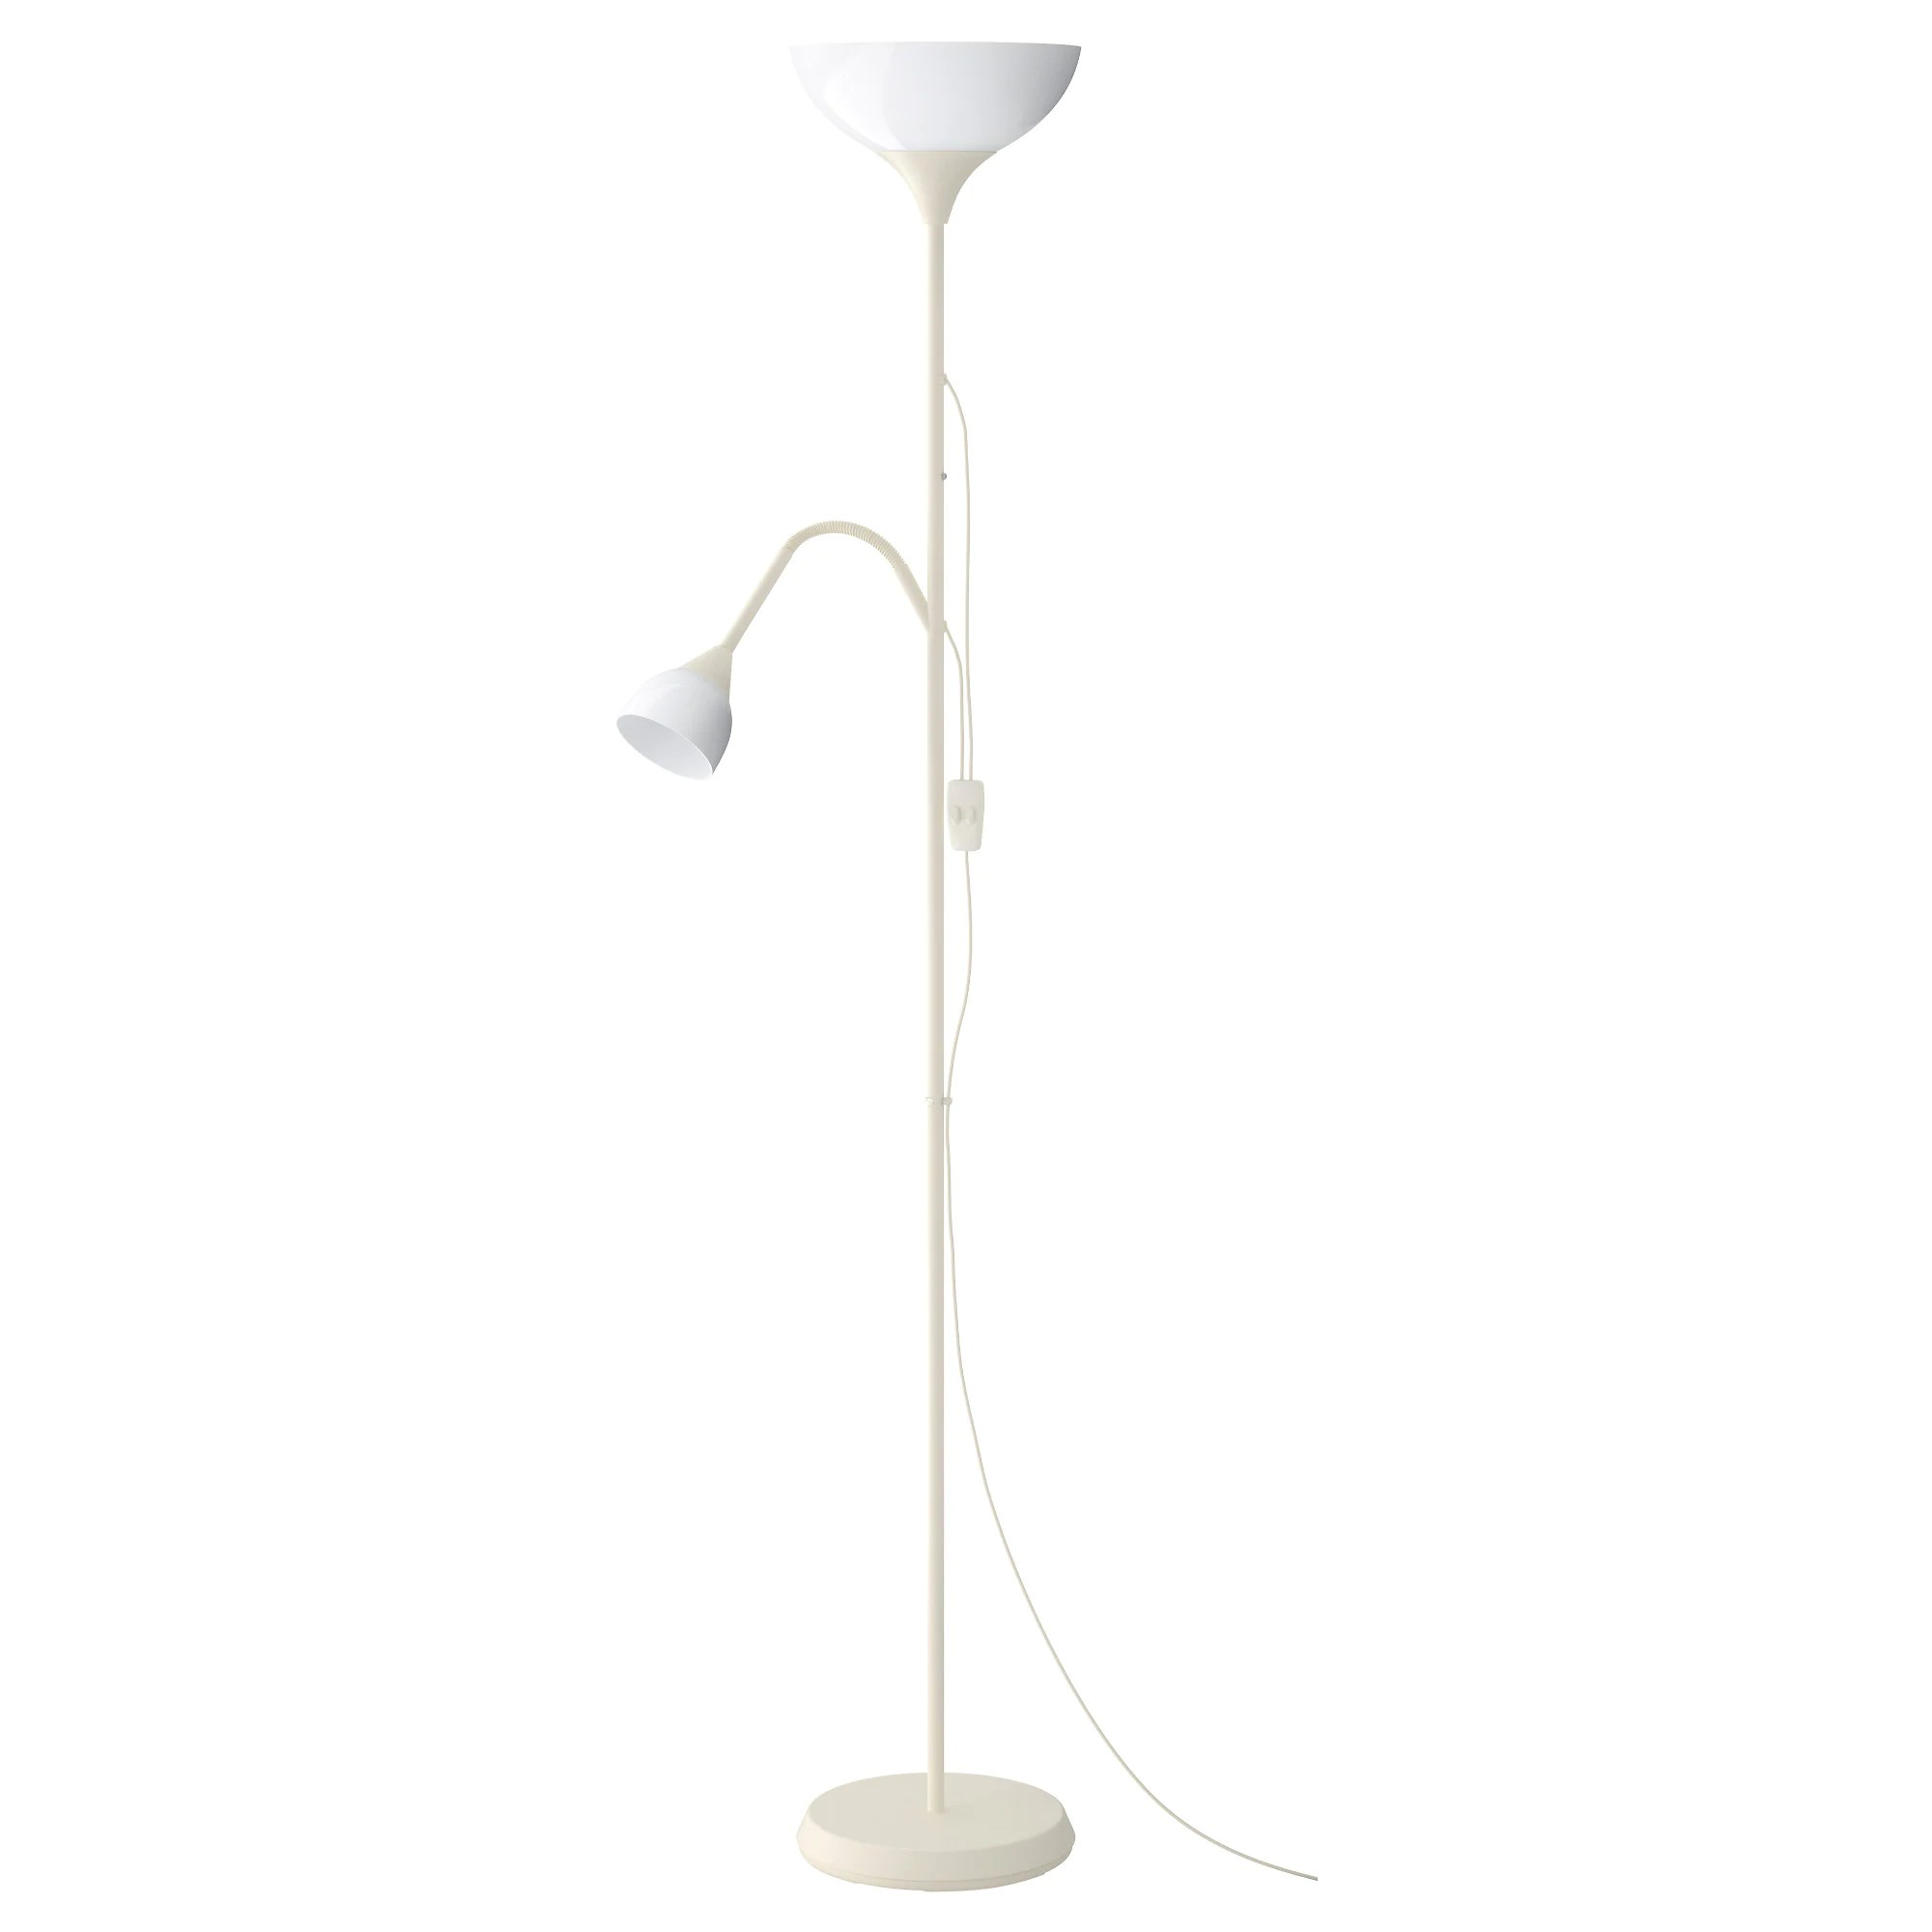 Gold Floor Reading Lamp Not Floor Uplight Reading Lamp White